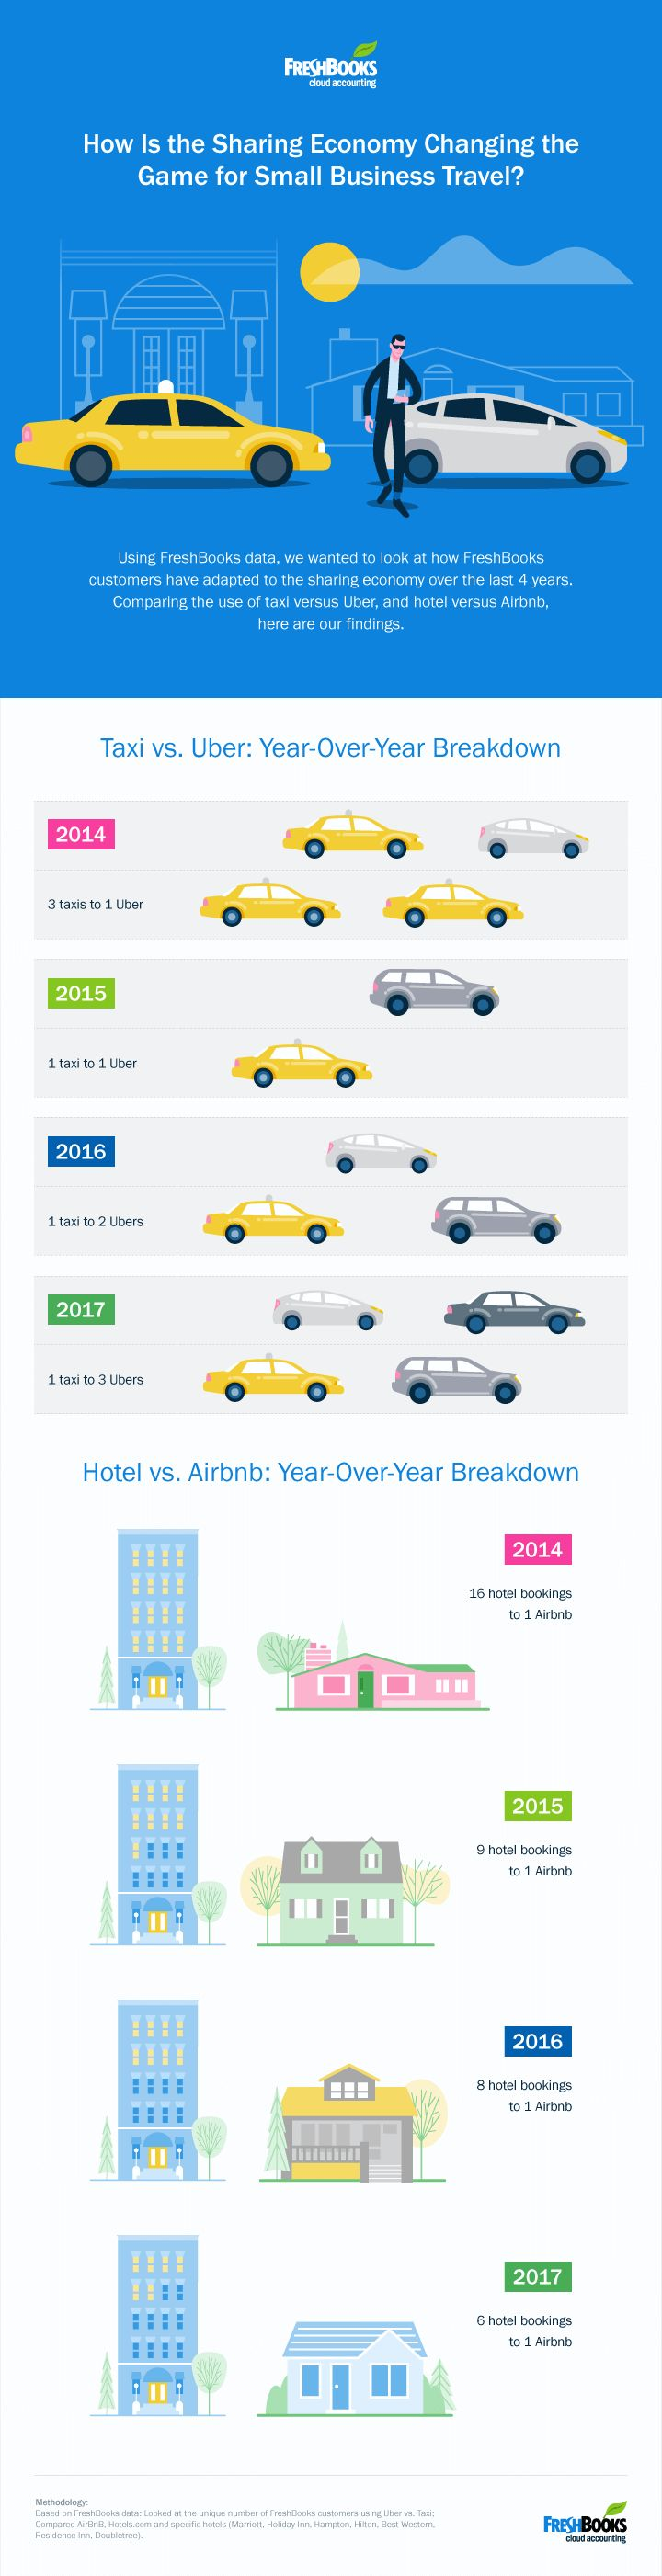 Small Business Travelers Now Three Times As Likely to Choose Uber (Infographic)   The sharing economy is on the rise — and small business travelers are loving it, a new study has found. According to data gathered by accounting software provider Freshbooks, ride sharing service Uber is leading a new shift in business travel. Airbnb, another leading name in the sharing economy, however is not ...